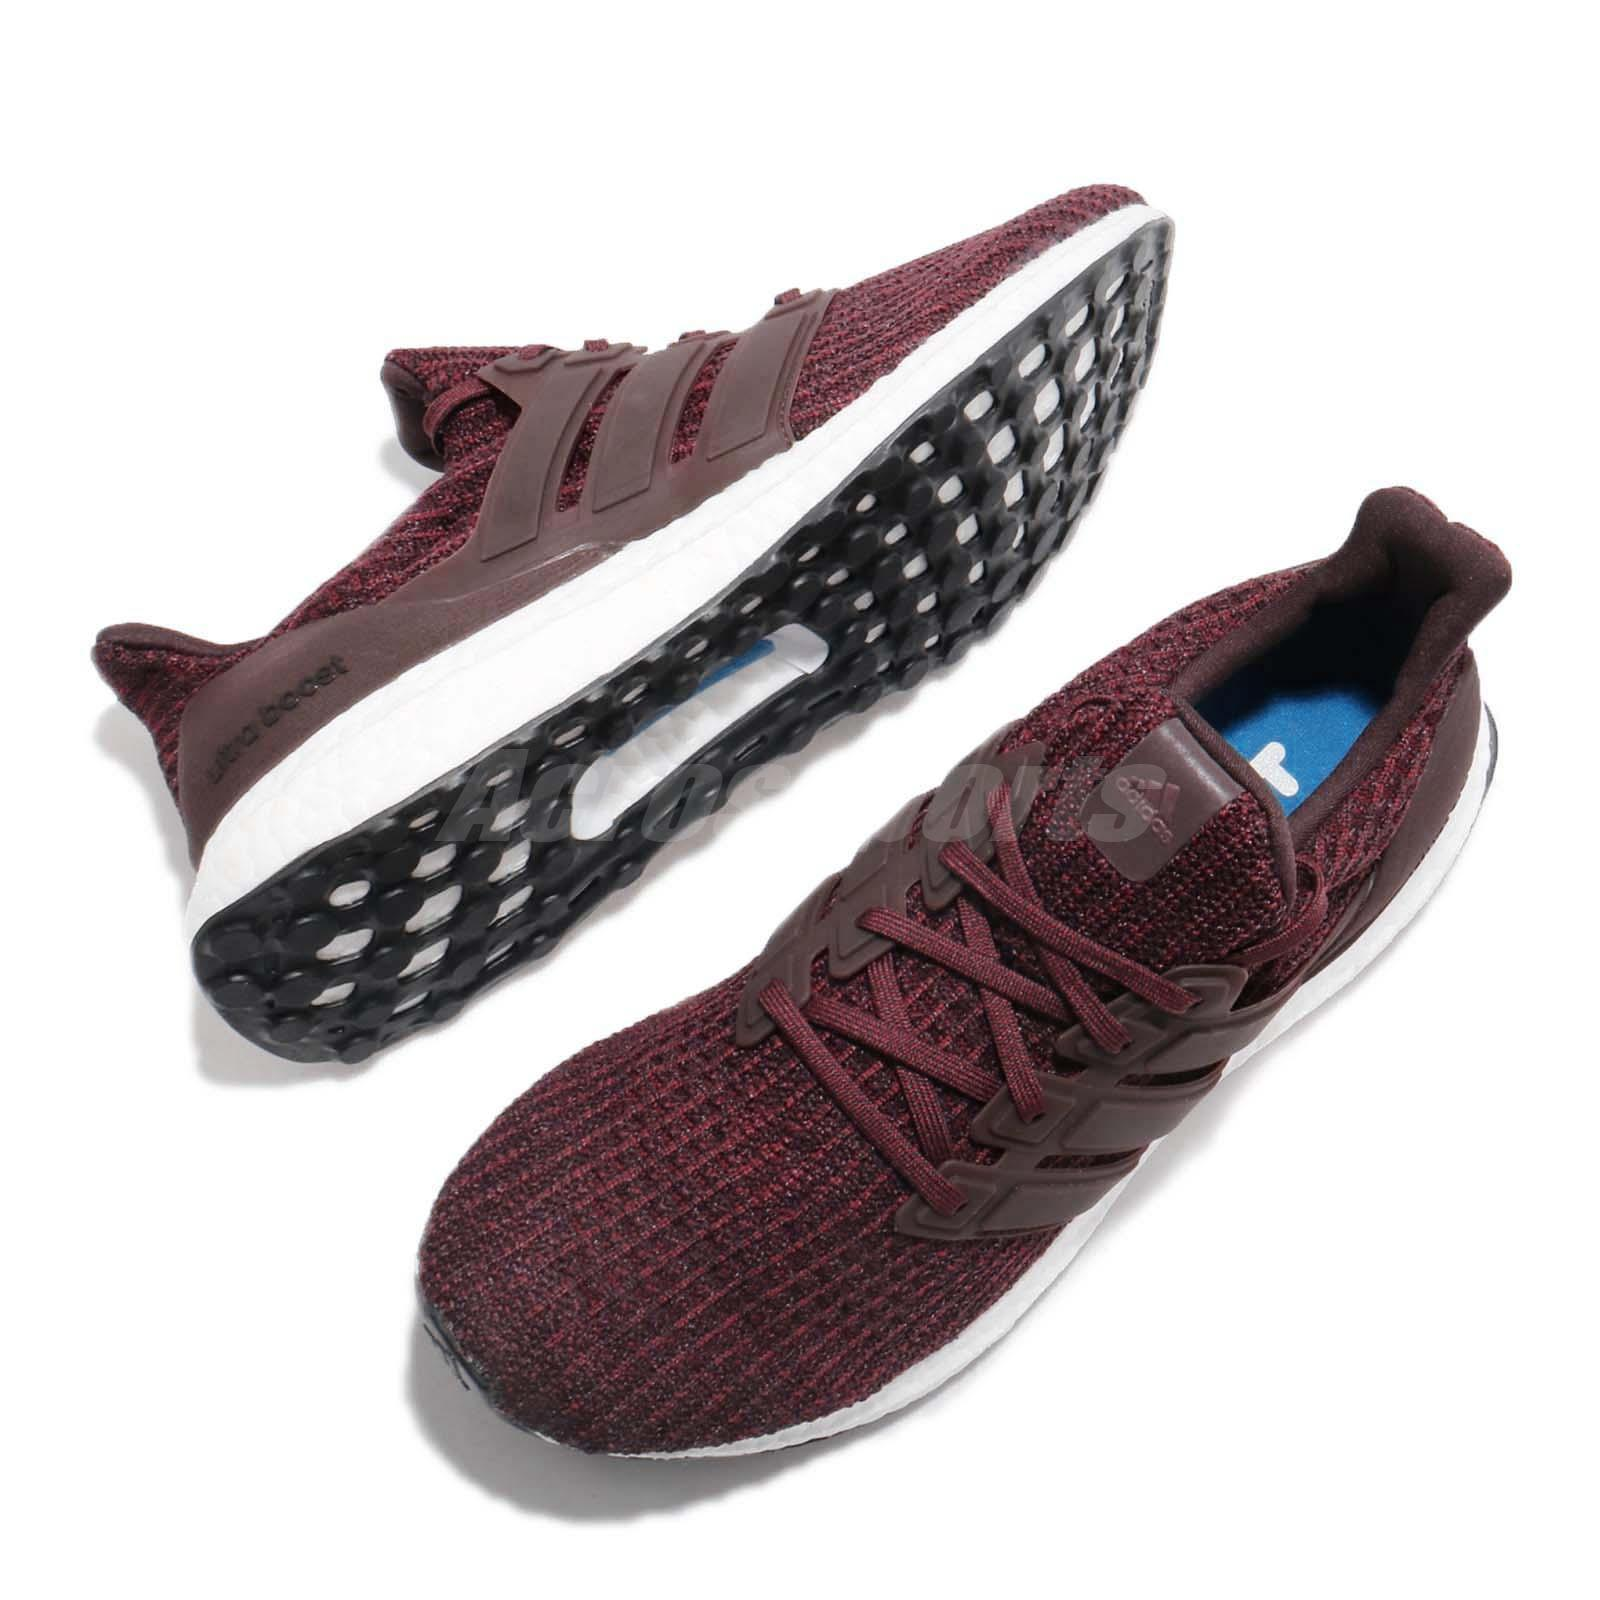 d9fee4a4ebc adidas UltraBOOST 4.0 Maroon Night Red White Men Running Shoes ...